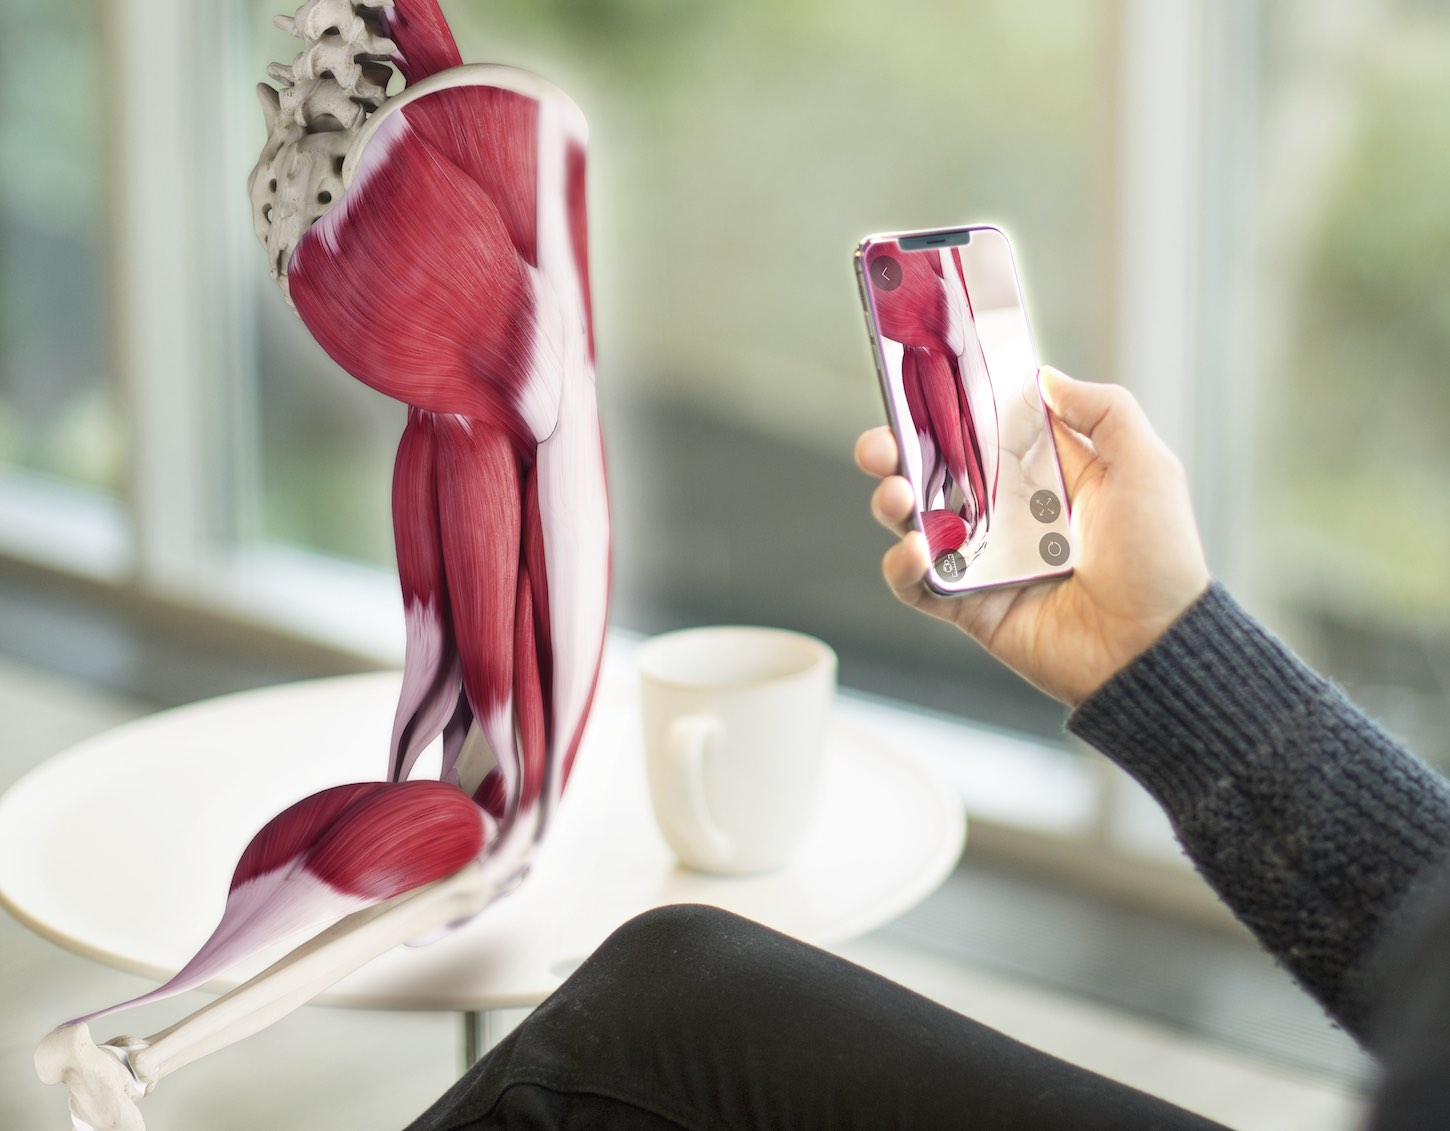 Multi Award Winning Complete Anatomy Comes To Iphone 3d4medical